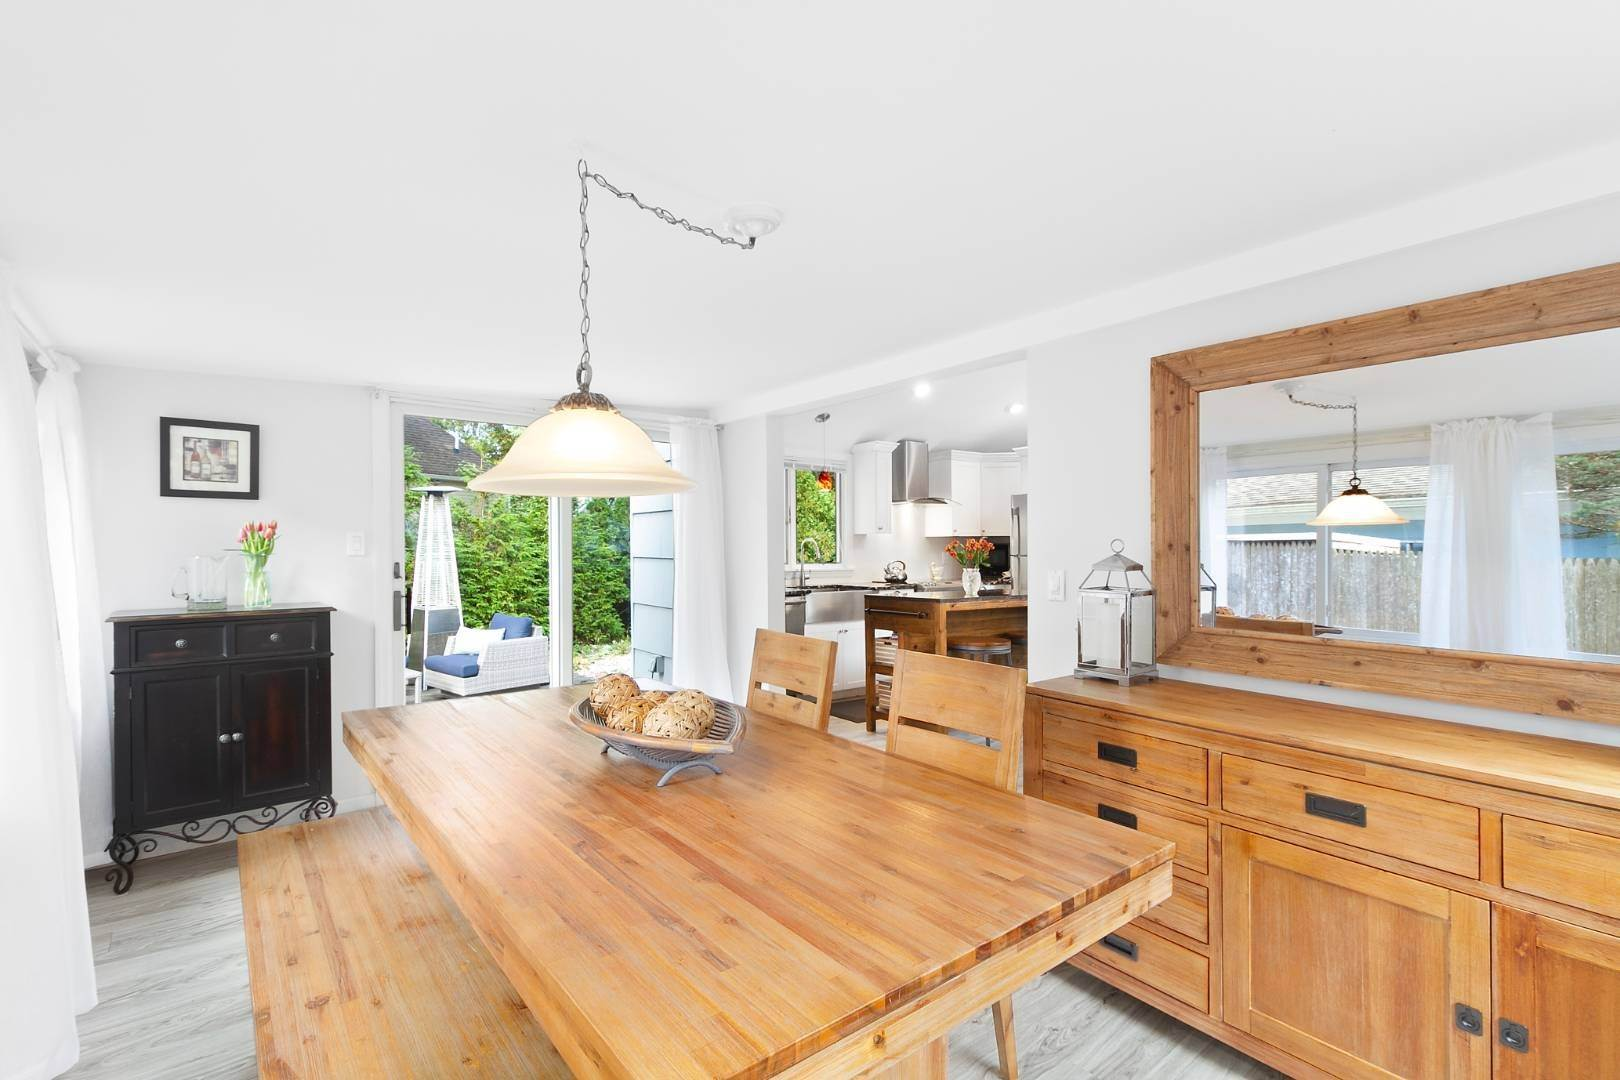 3. Single Family Home at Sag Harbor Beach Property For Rent 21 Elm Street, Sag Harbor, NY 11963